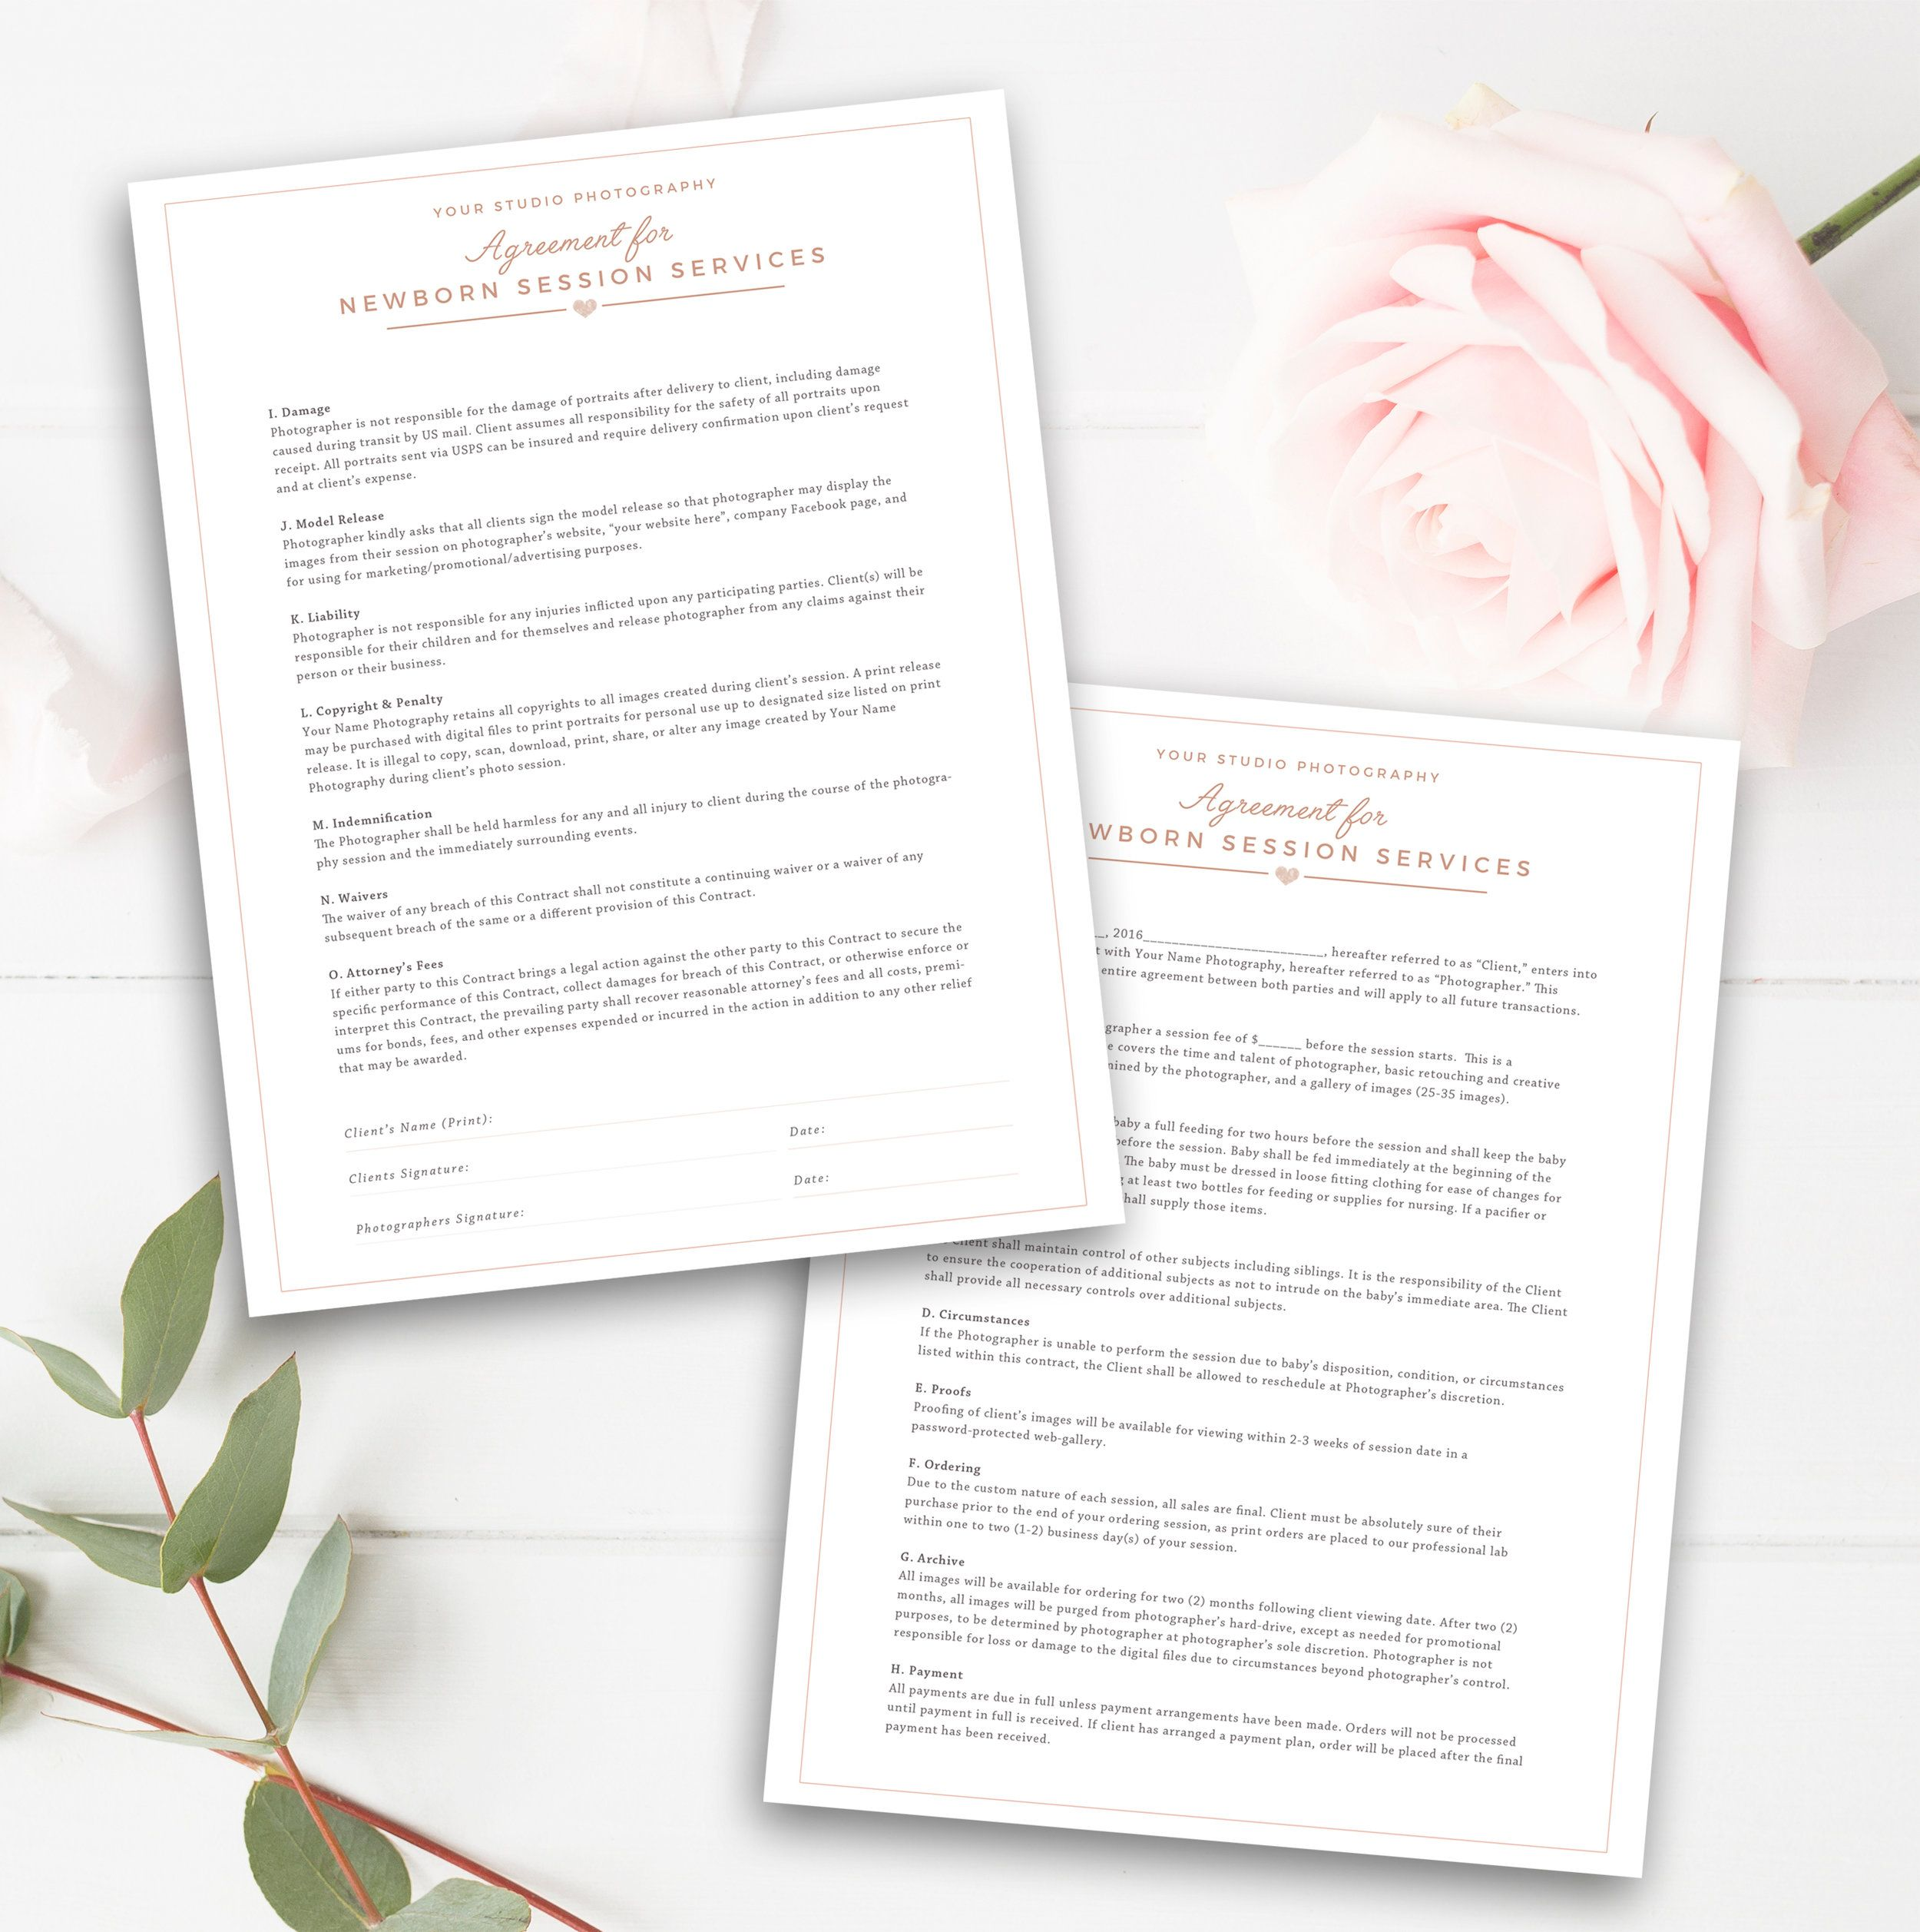 newborn photography contract template newborn photographer business forms photoshop download instant download